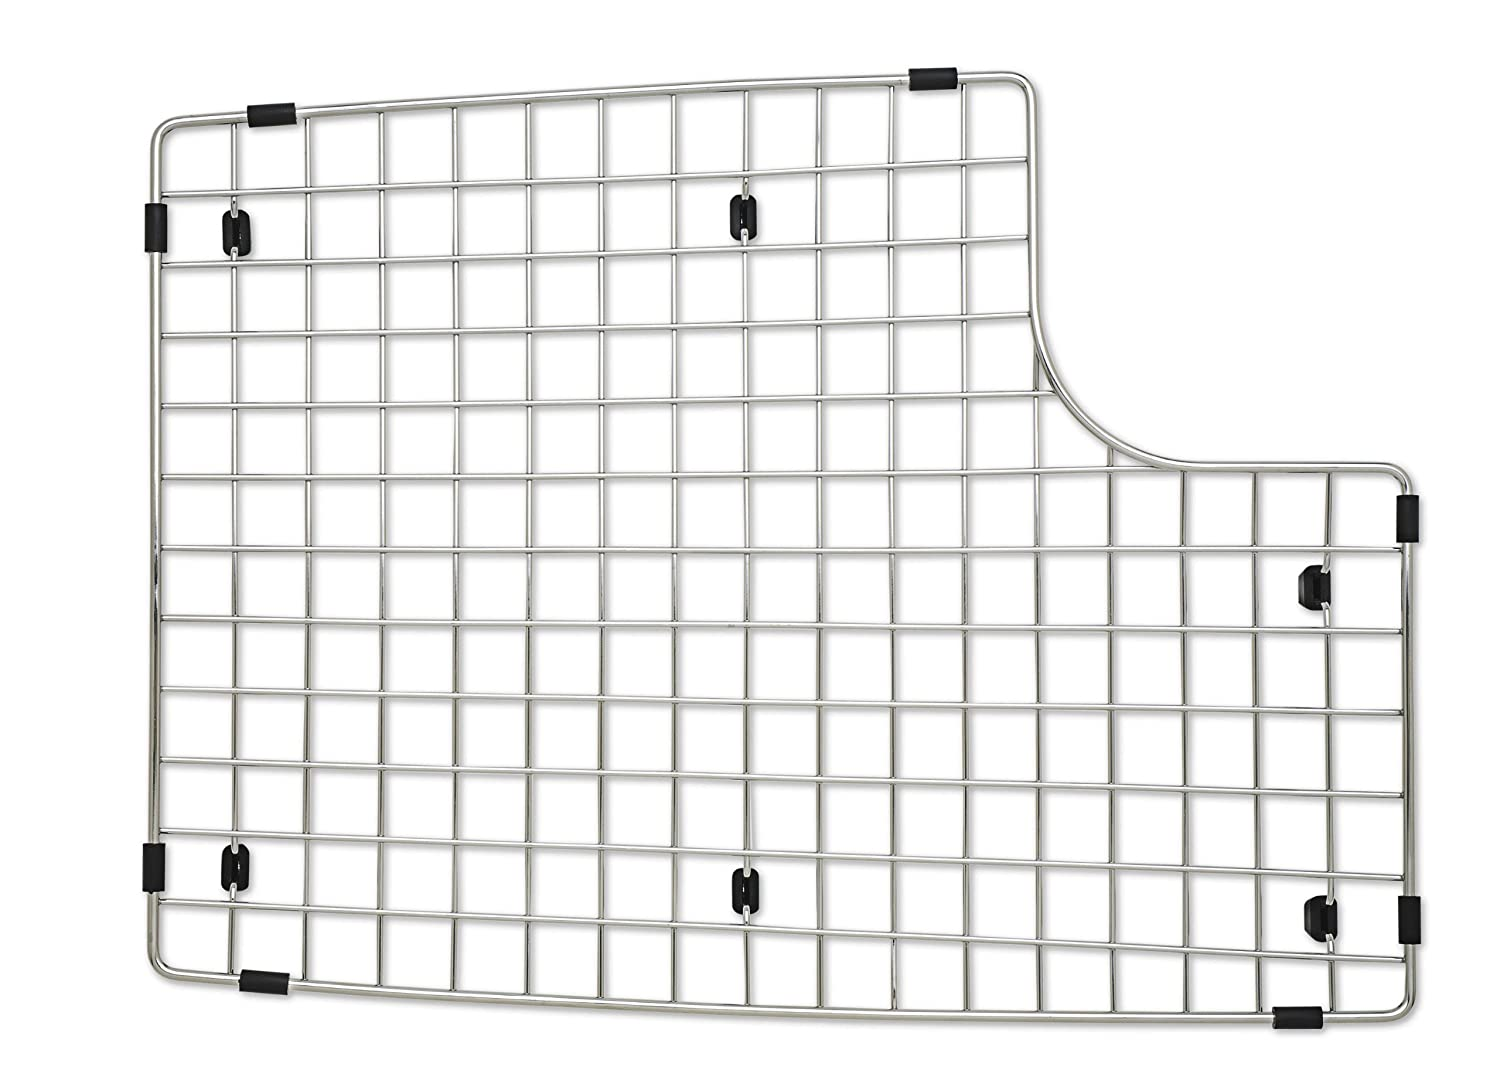 amazoncom blanco 222472 sink grid fits performa silgranit ii cascade stainless steel home improvement - Stainless Steel Sink Grid